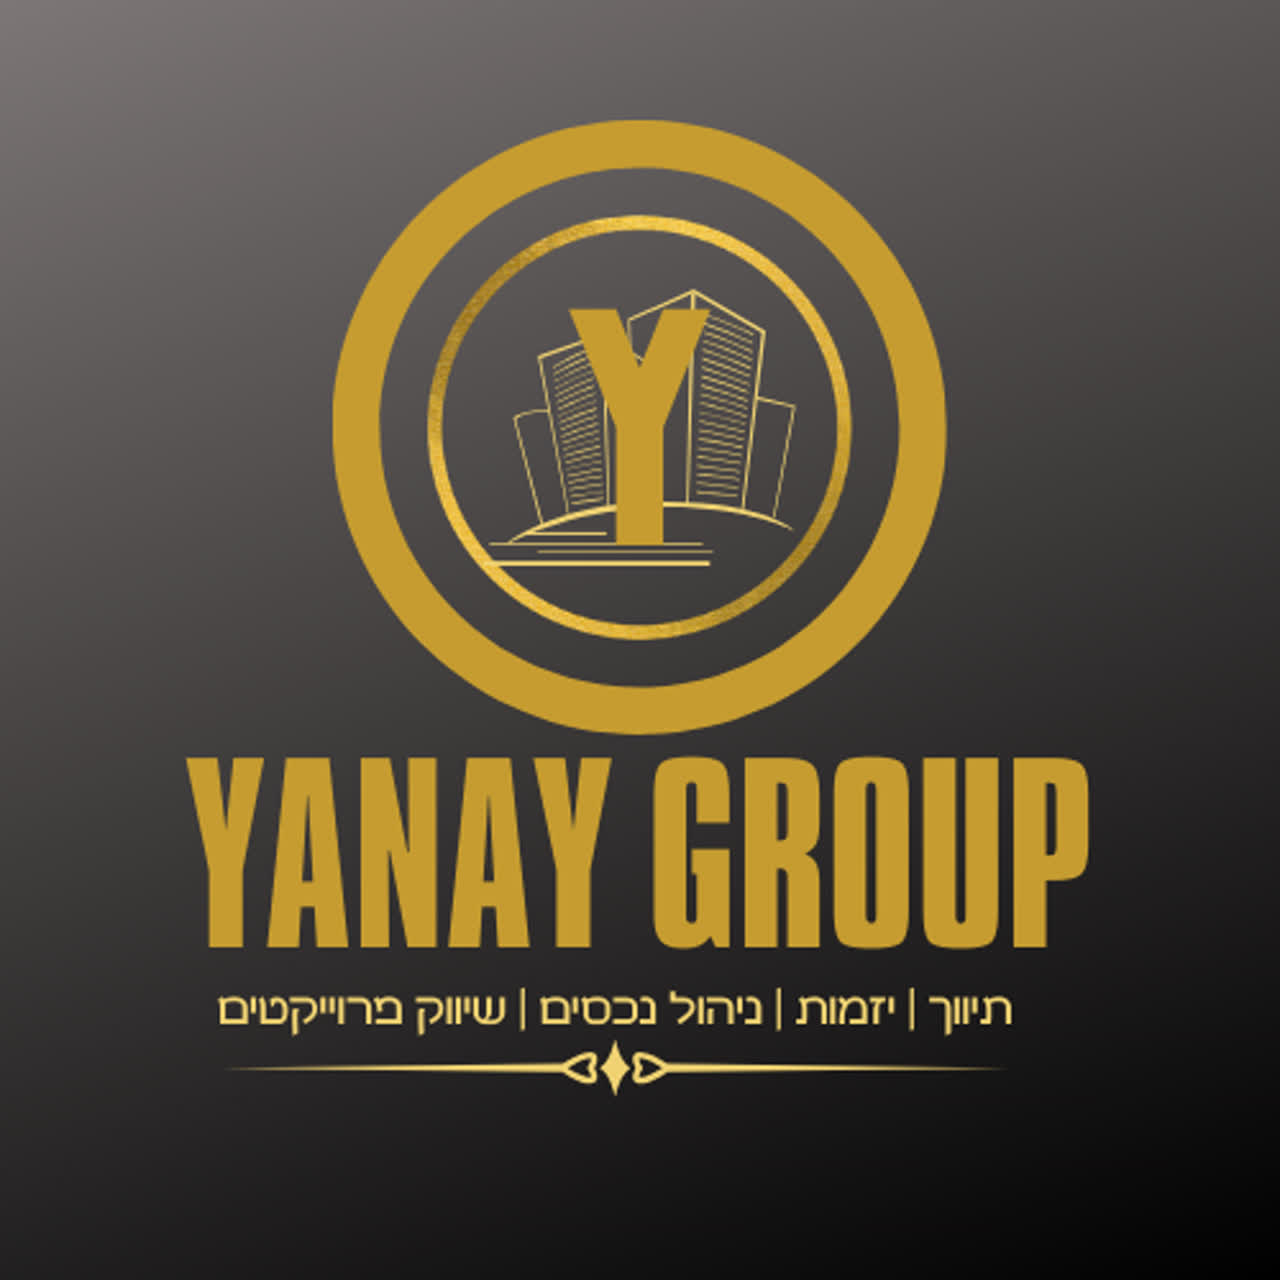 yanay group